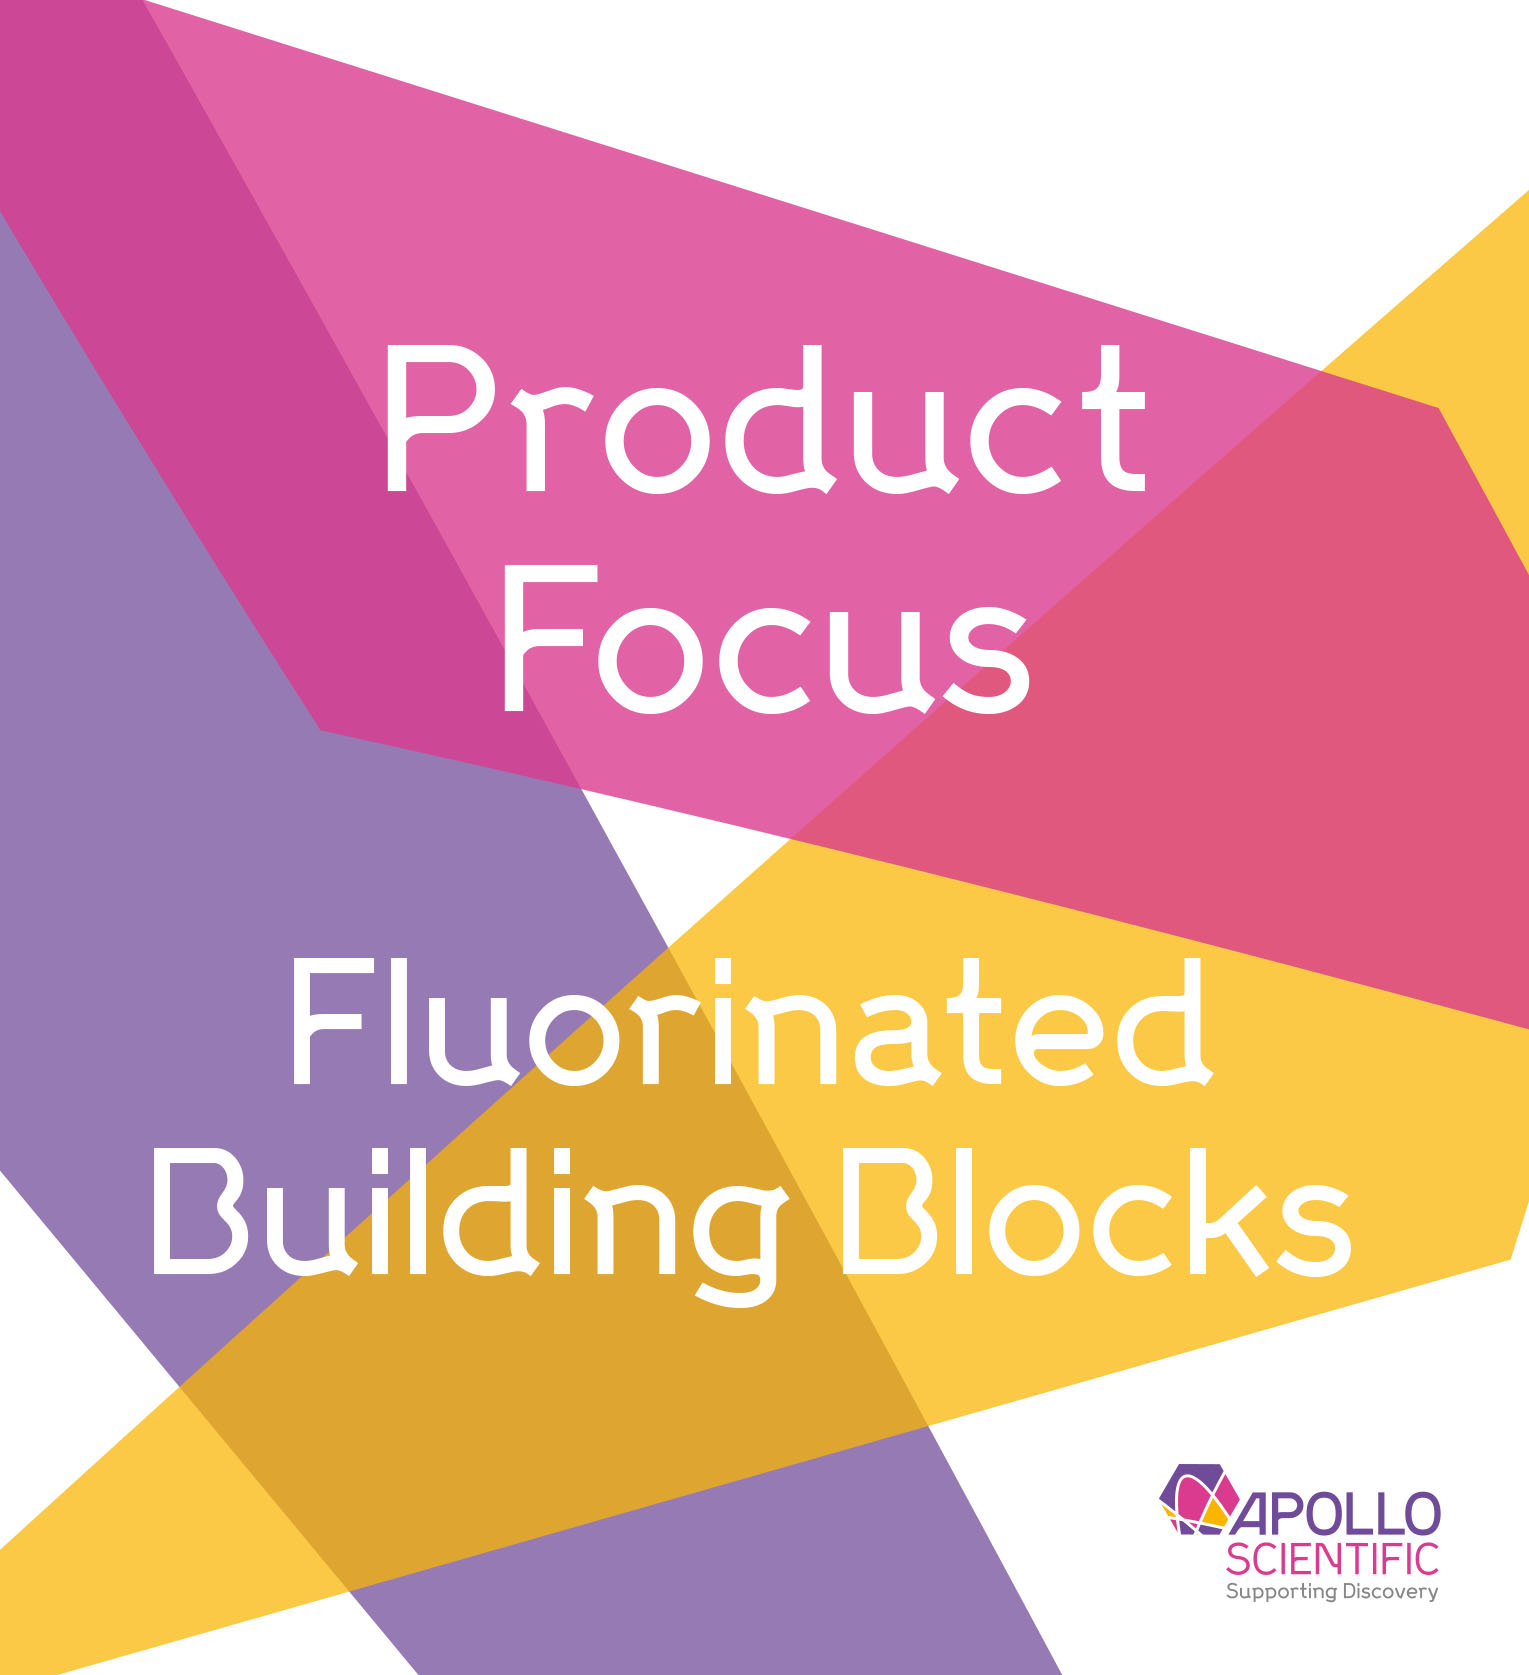 Product Focus – Fluorinated Building Blocks thumbnail image